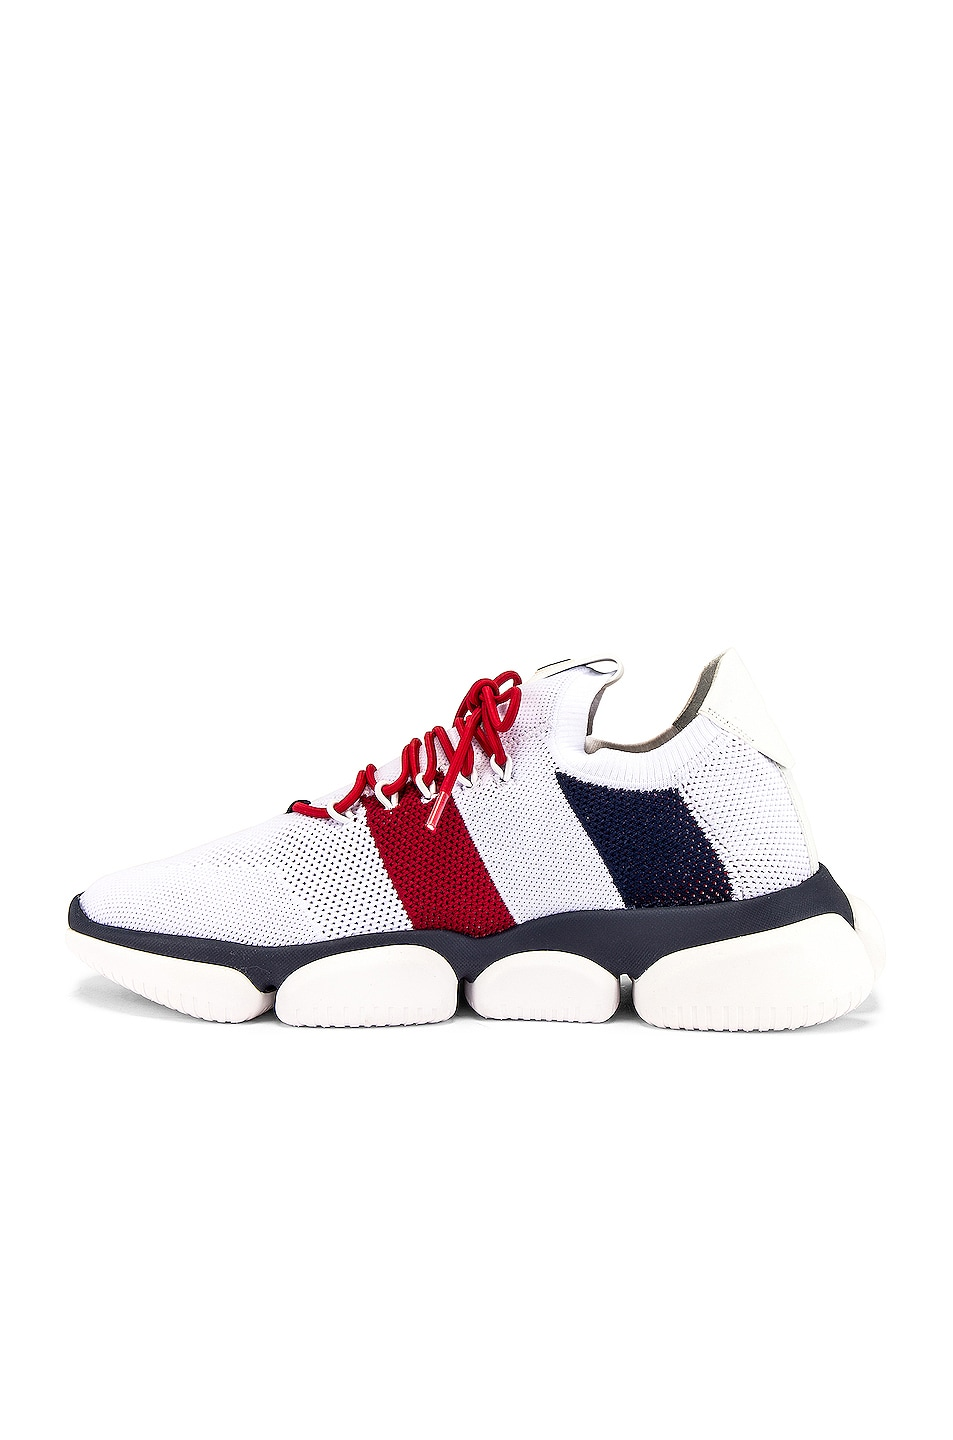 Image 5 of Moncler Low Top Sneaker in Red & White & Blue